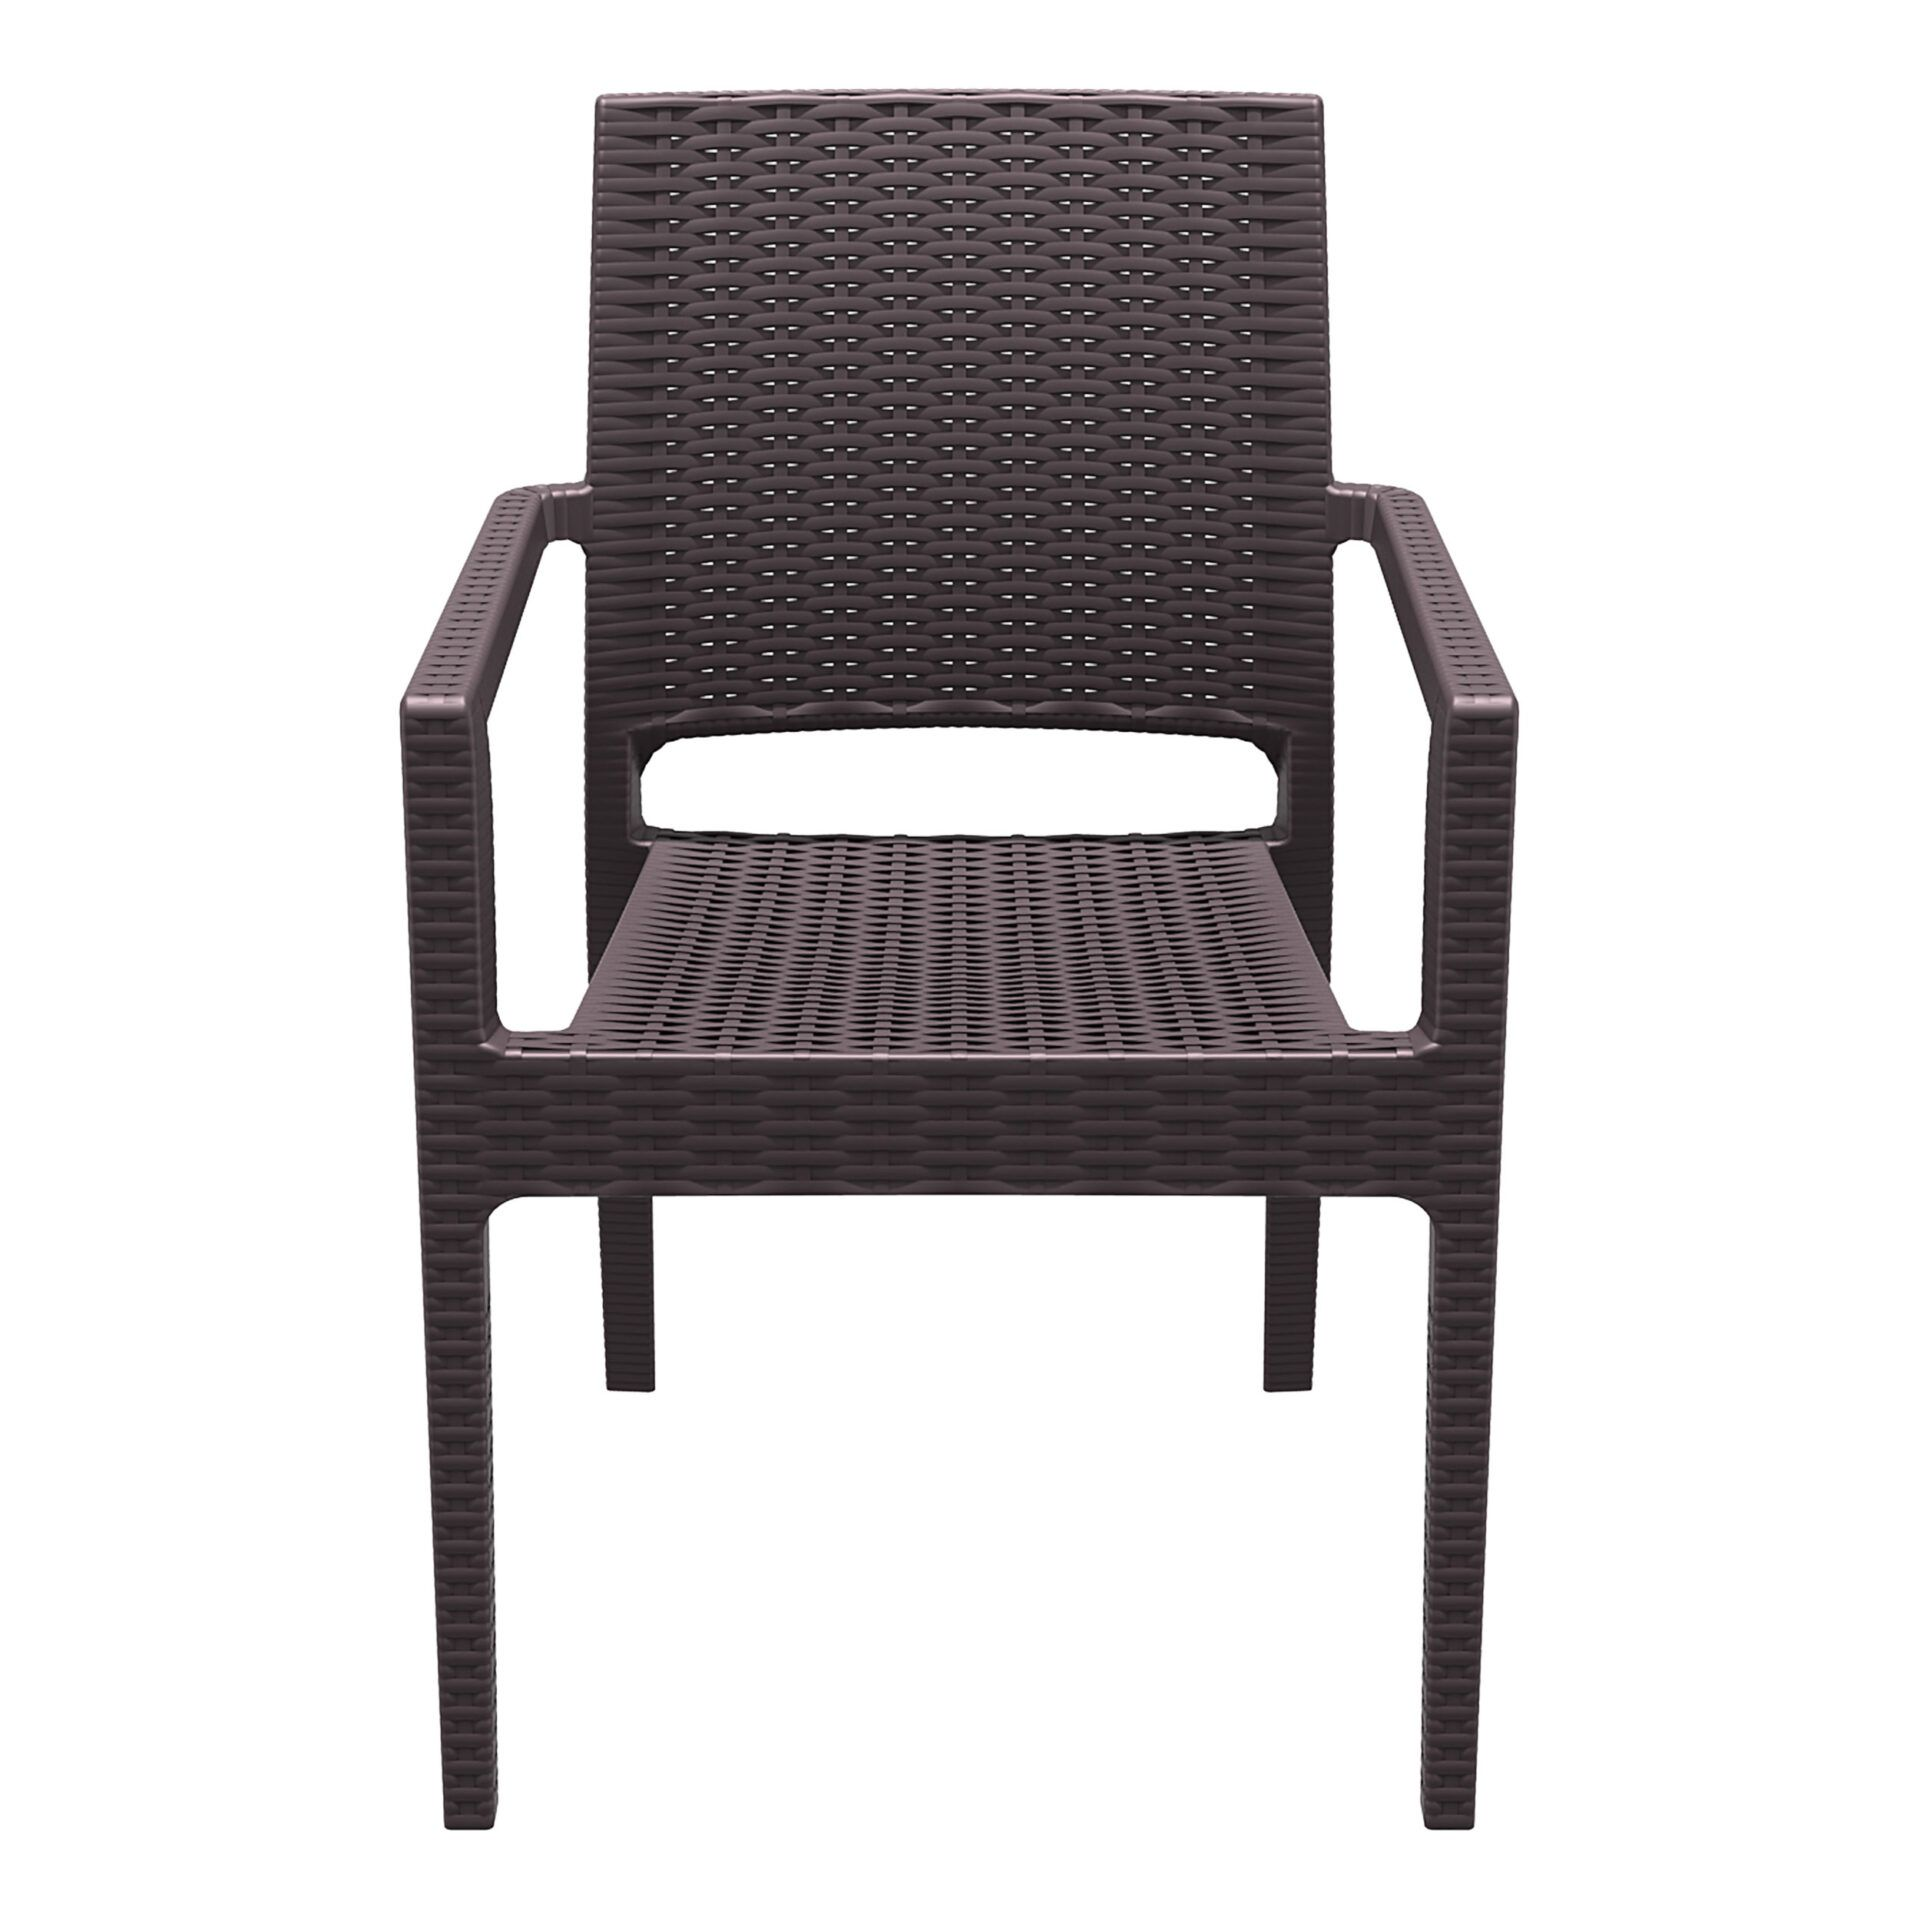 outdoor seating resin rattan ibiza armchair brown front